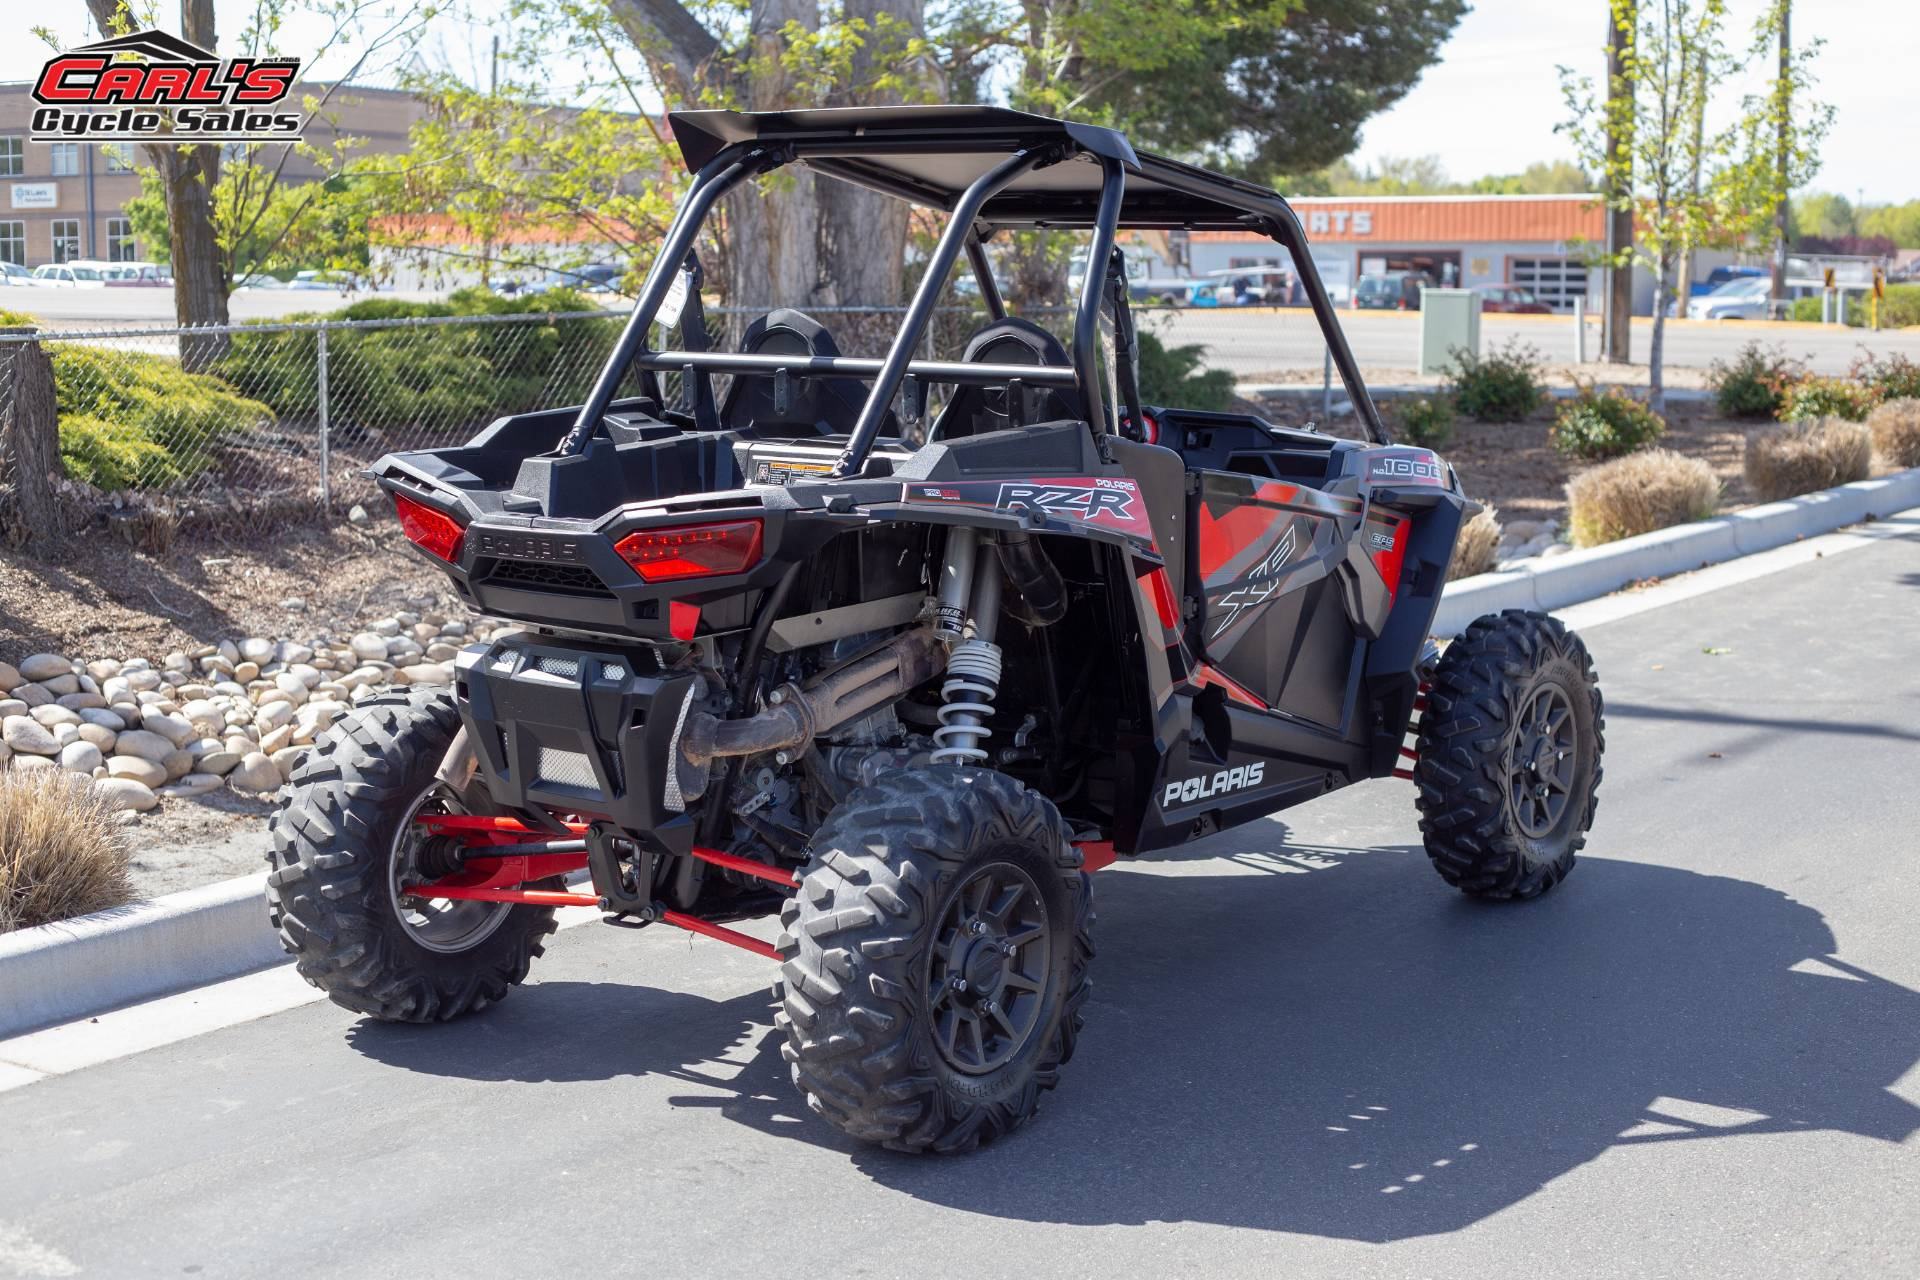 2017 Polaris RZR XP 1000 EPS in Boise, Idaho - Photo 5